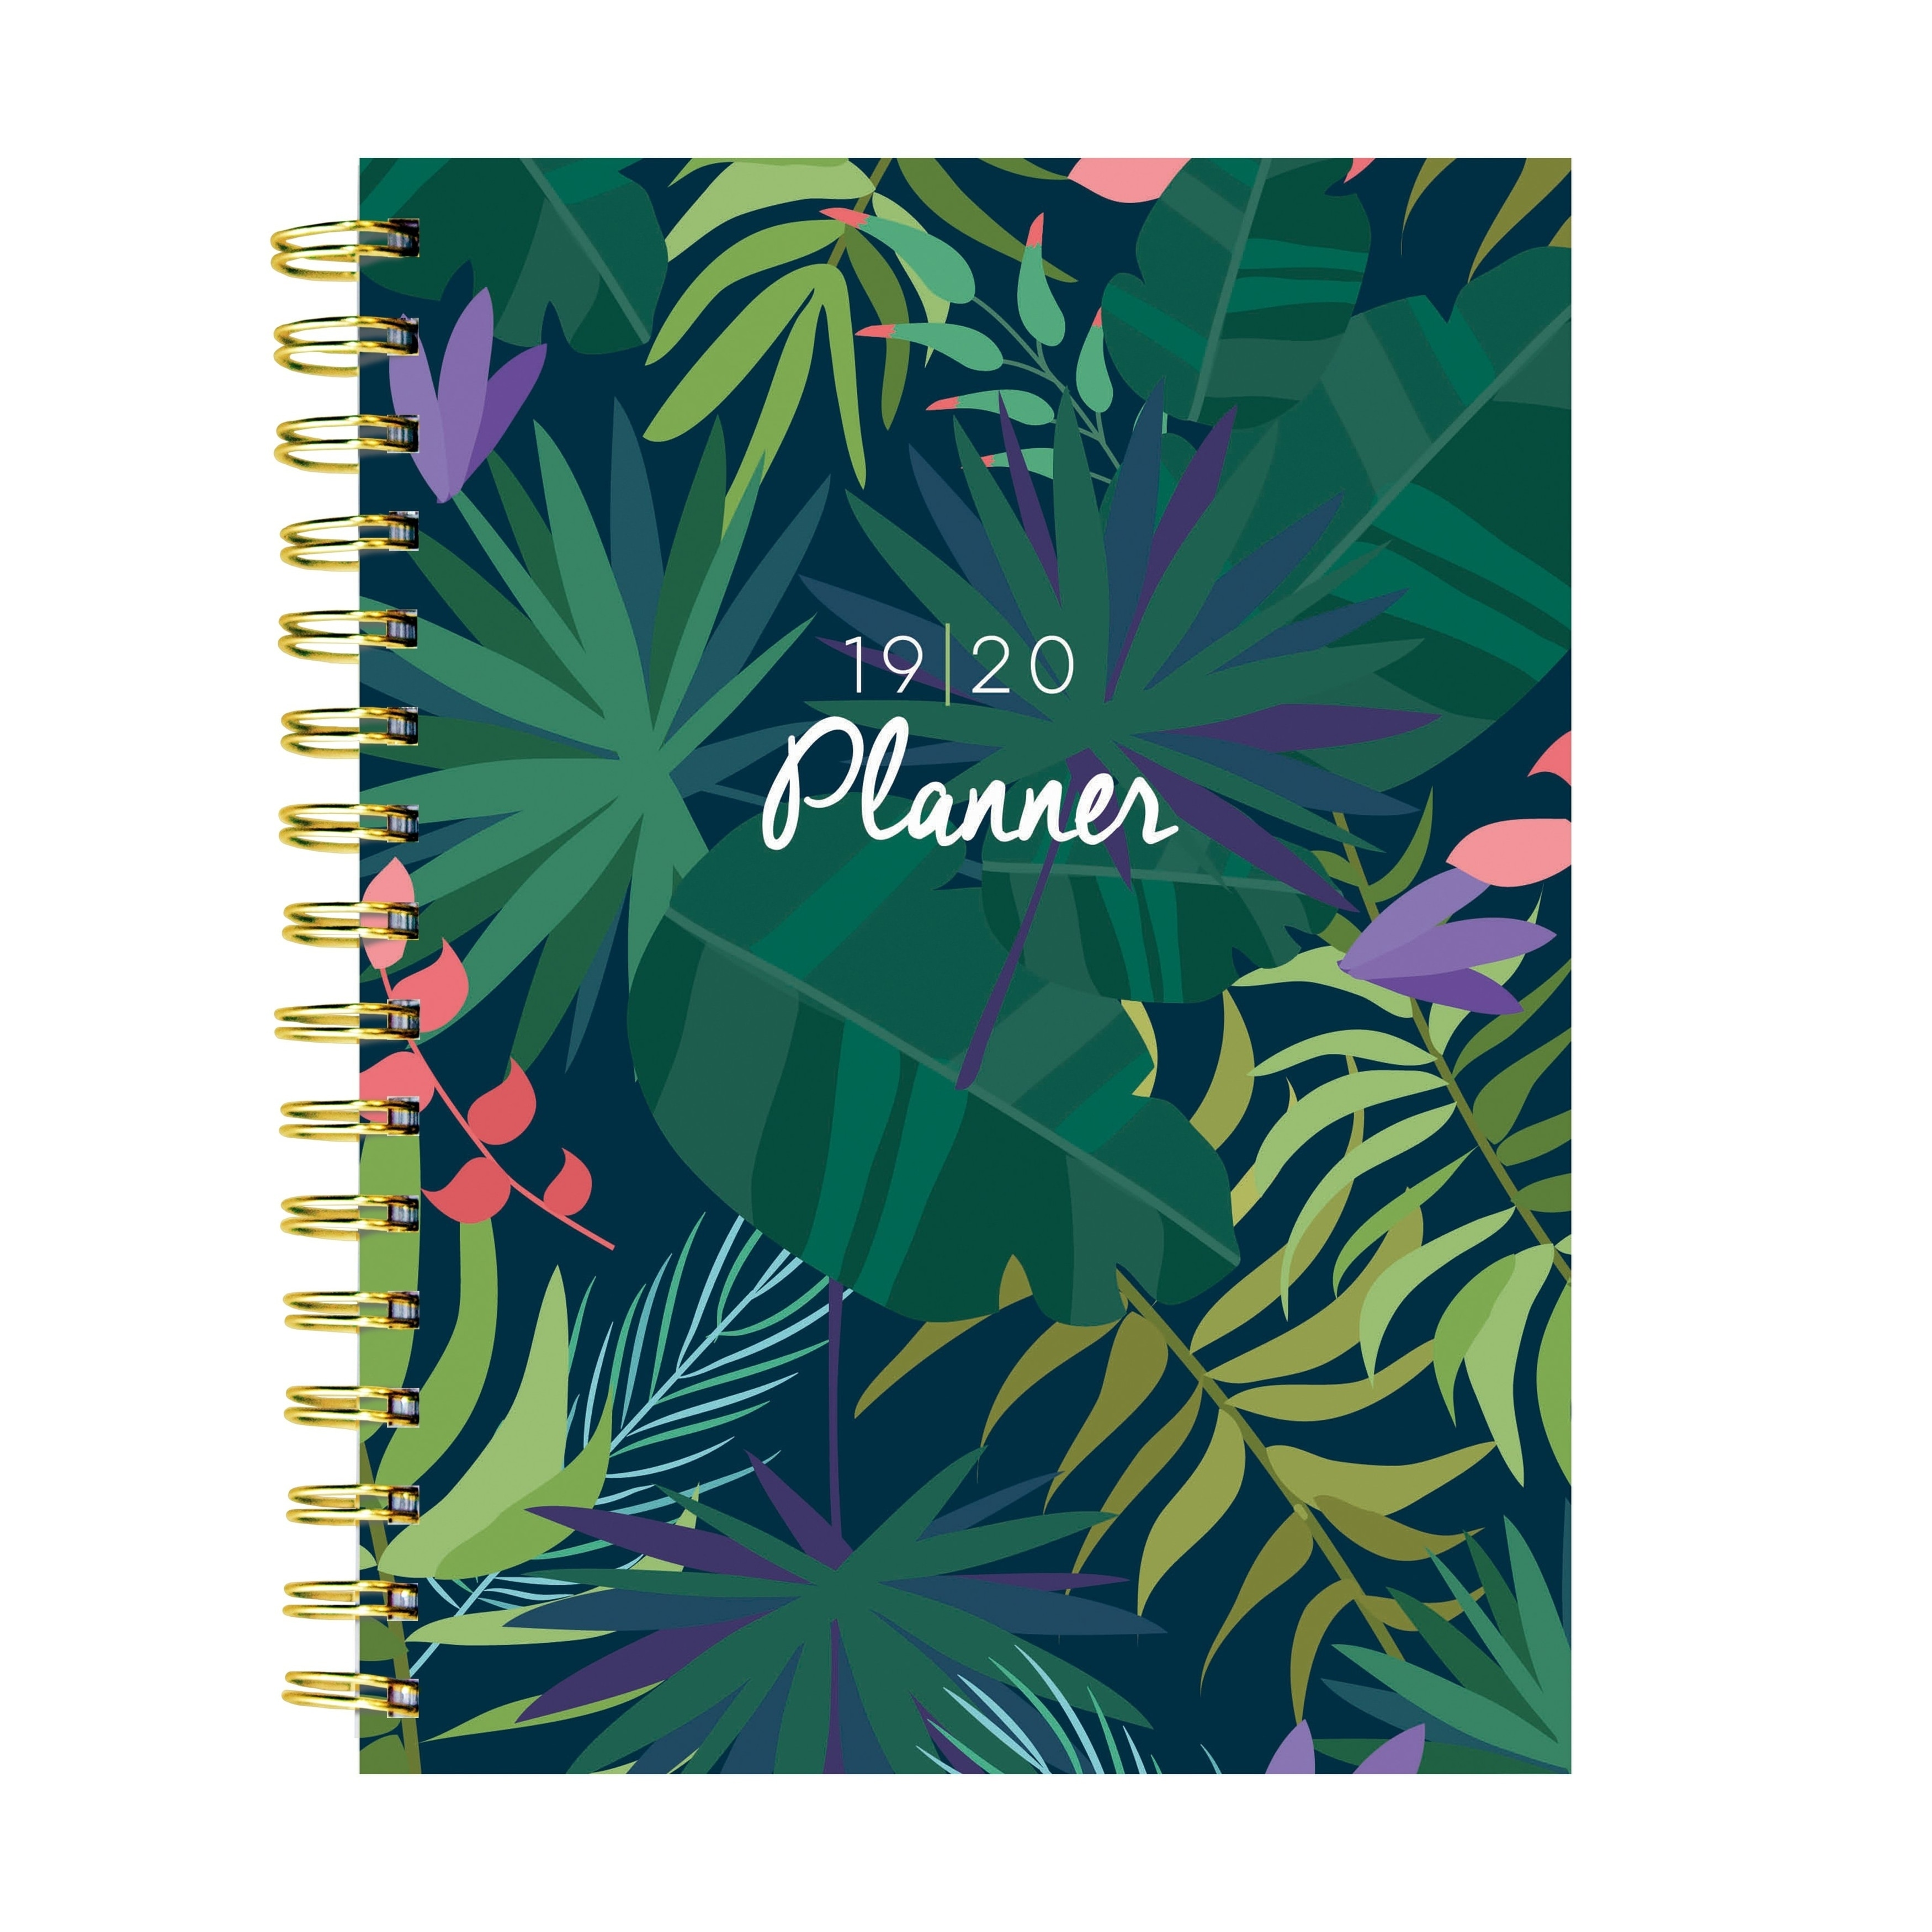 graphic regarding Stylish Planners and Organizers called Order Planners Organizers On-line at Overstock Our Easiest